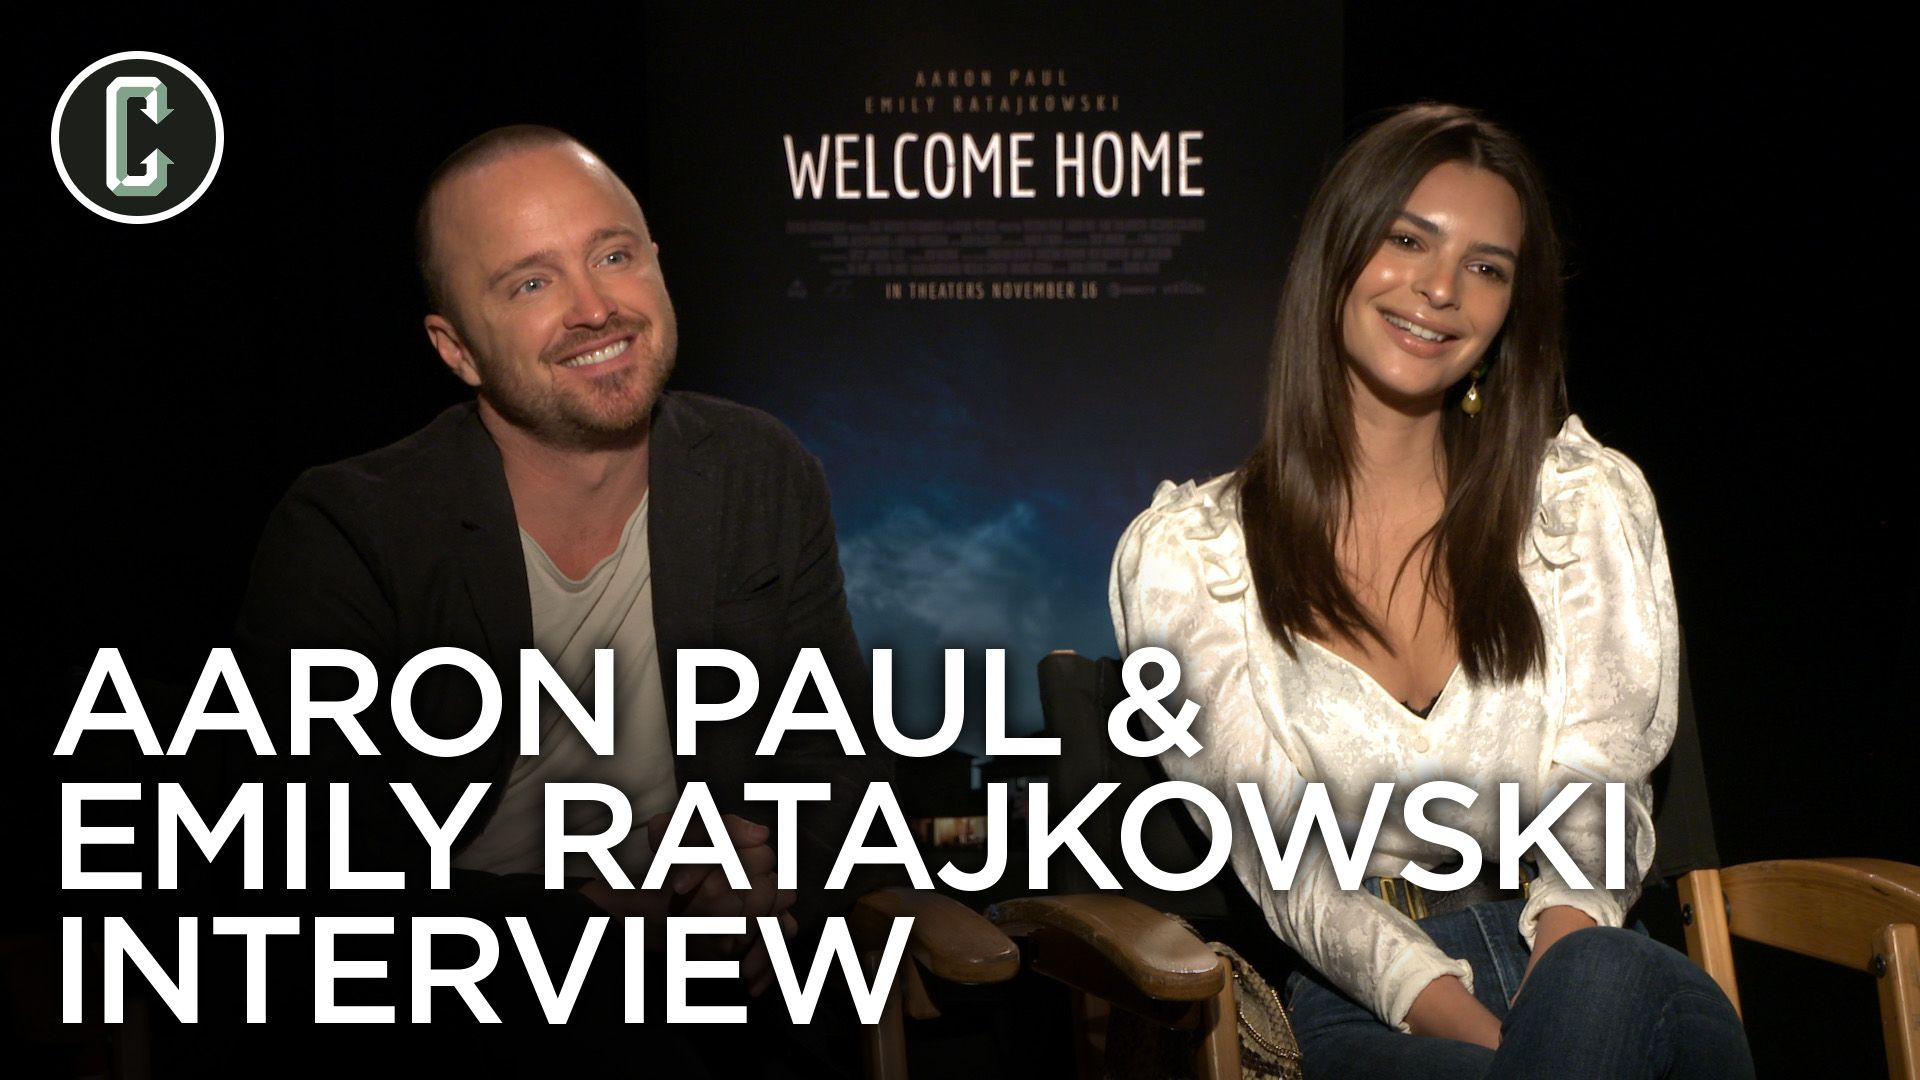 Aaron Paul and Emily Ratajkowski on Their Thriller 'Welcome Home'